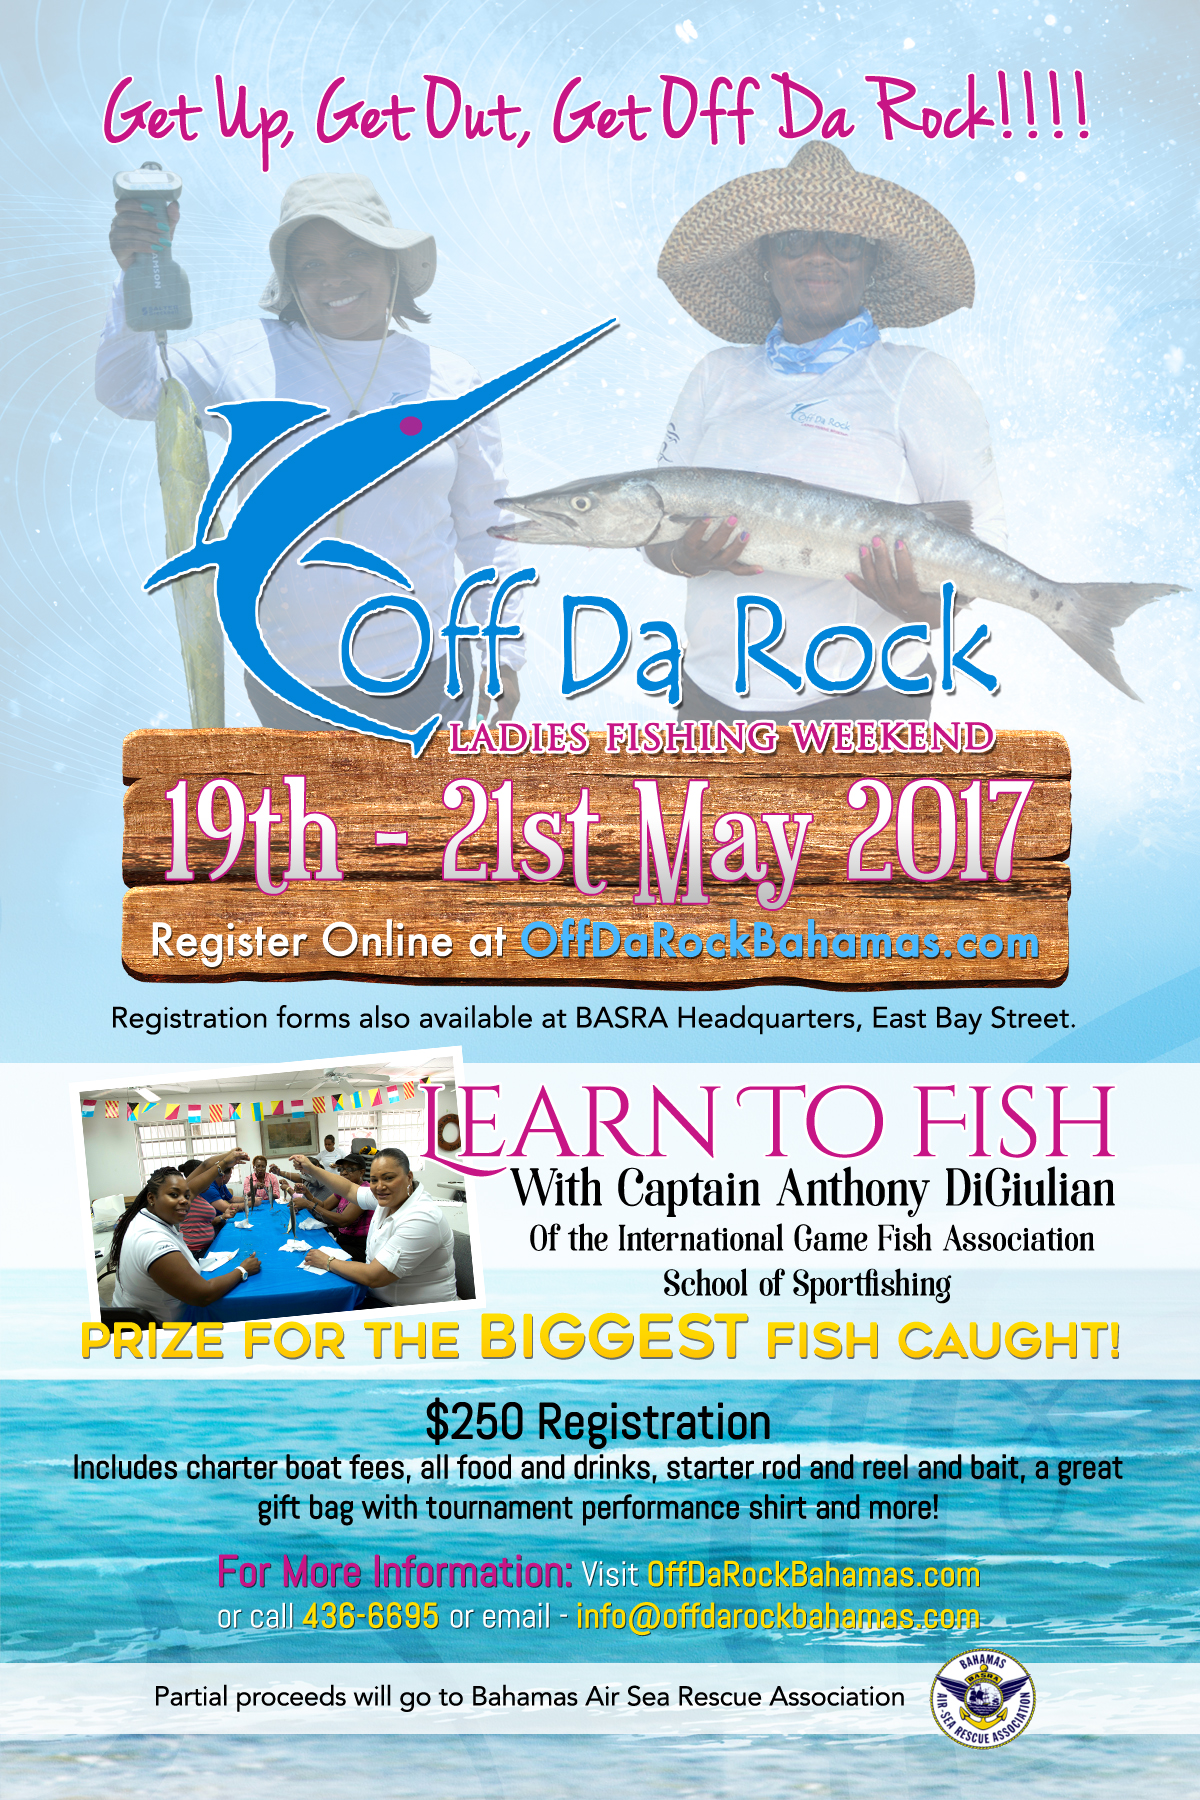 Off Da Rock Ladies Fishing Weekend